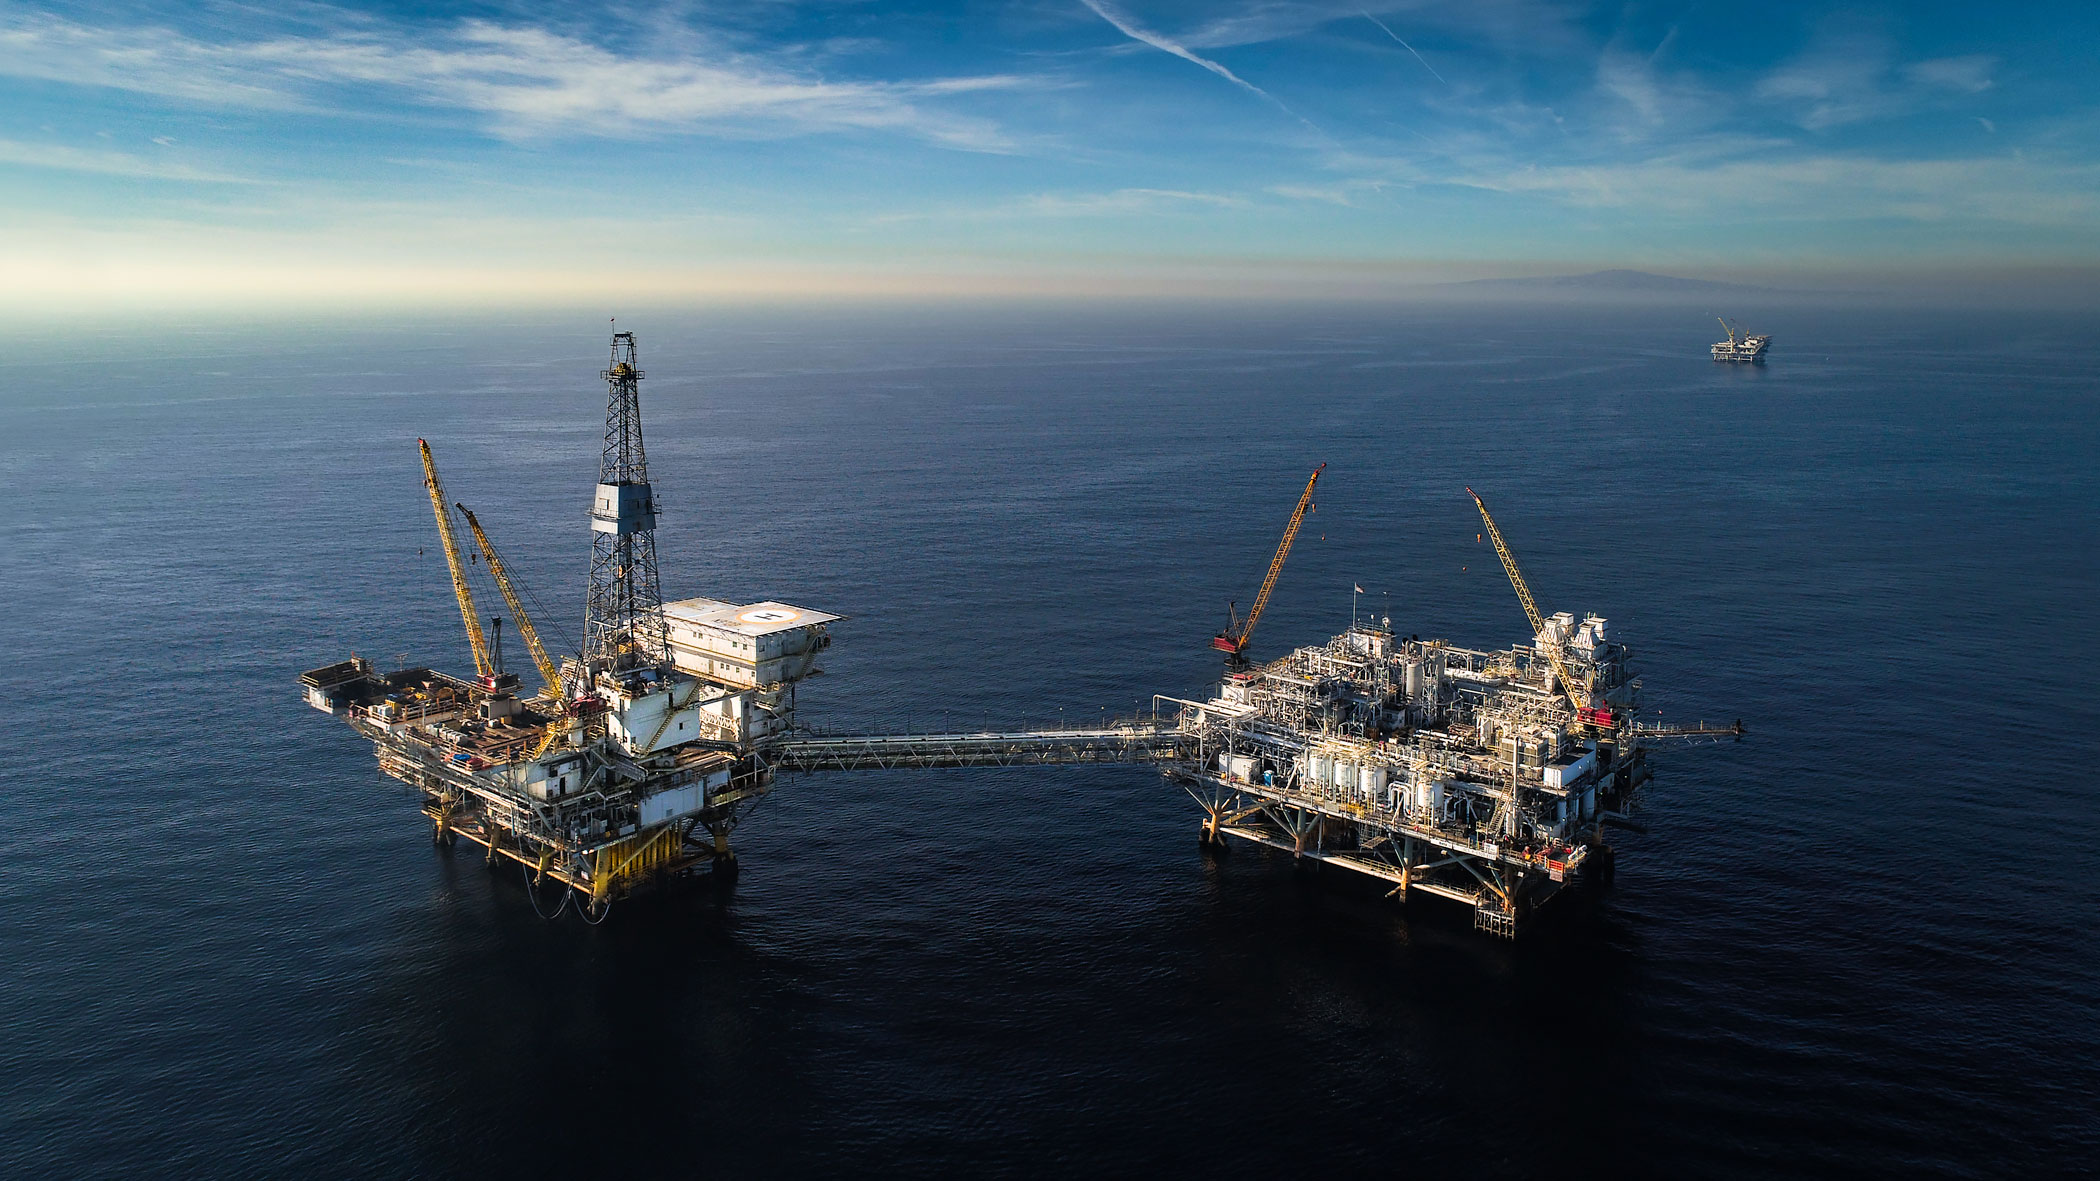 Aerial view of an offshore oil platform | Scott Gable industrial photographer